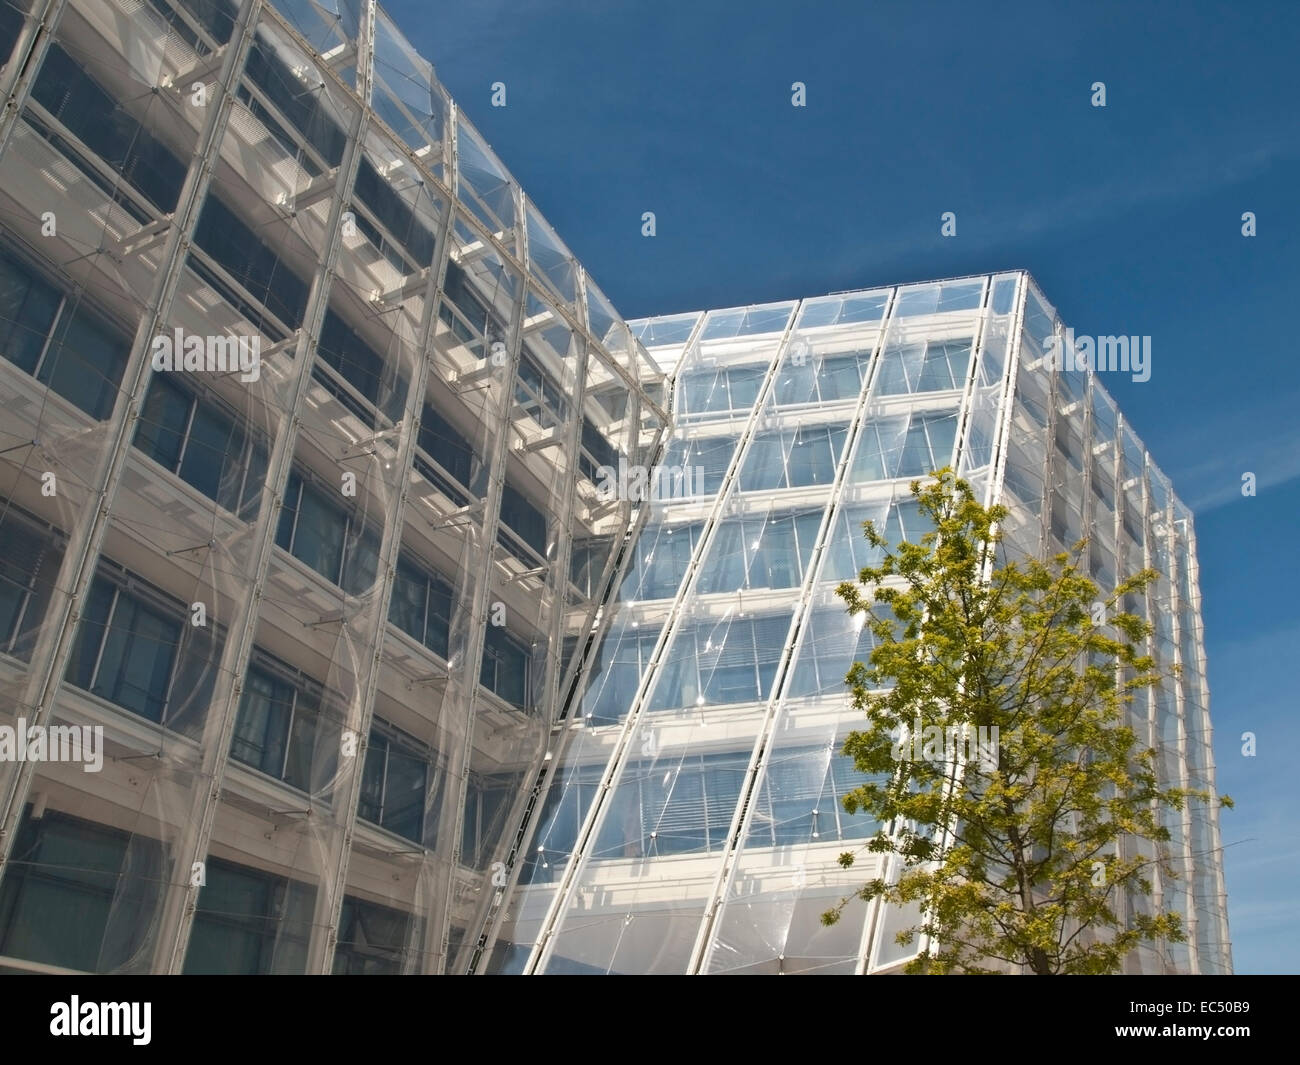 Sustainable Building in the Harbour City, Hamburg, Germany - Stock Image